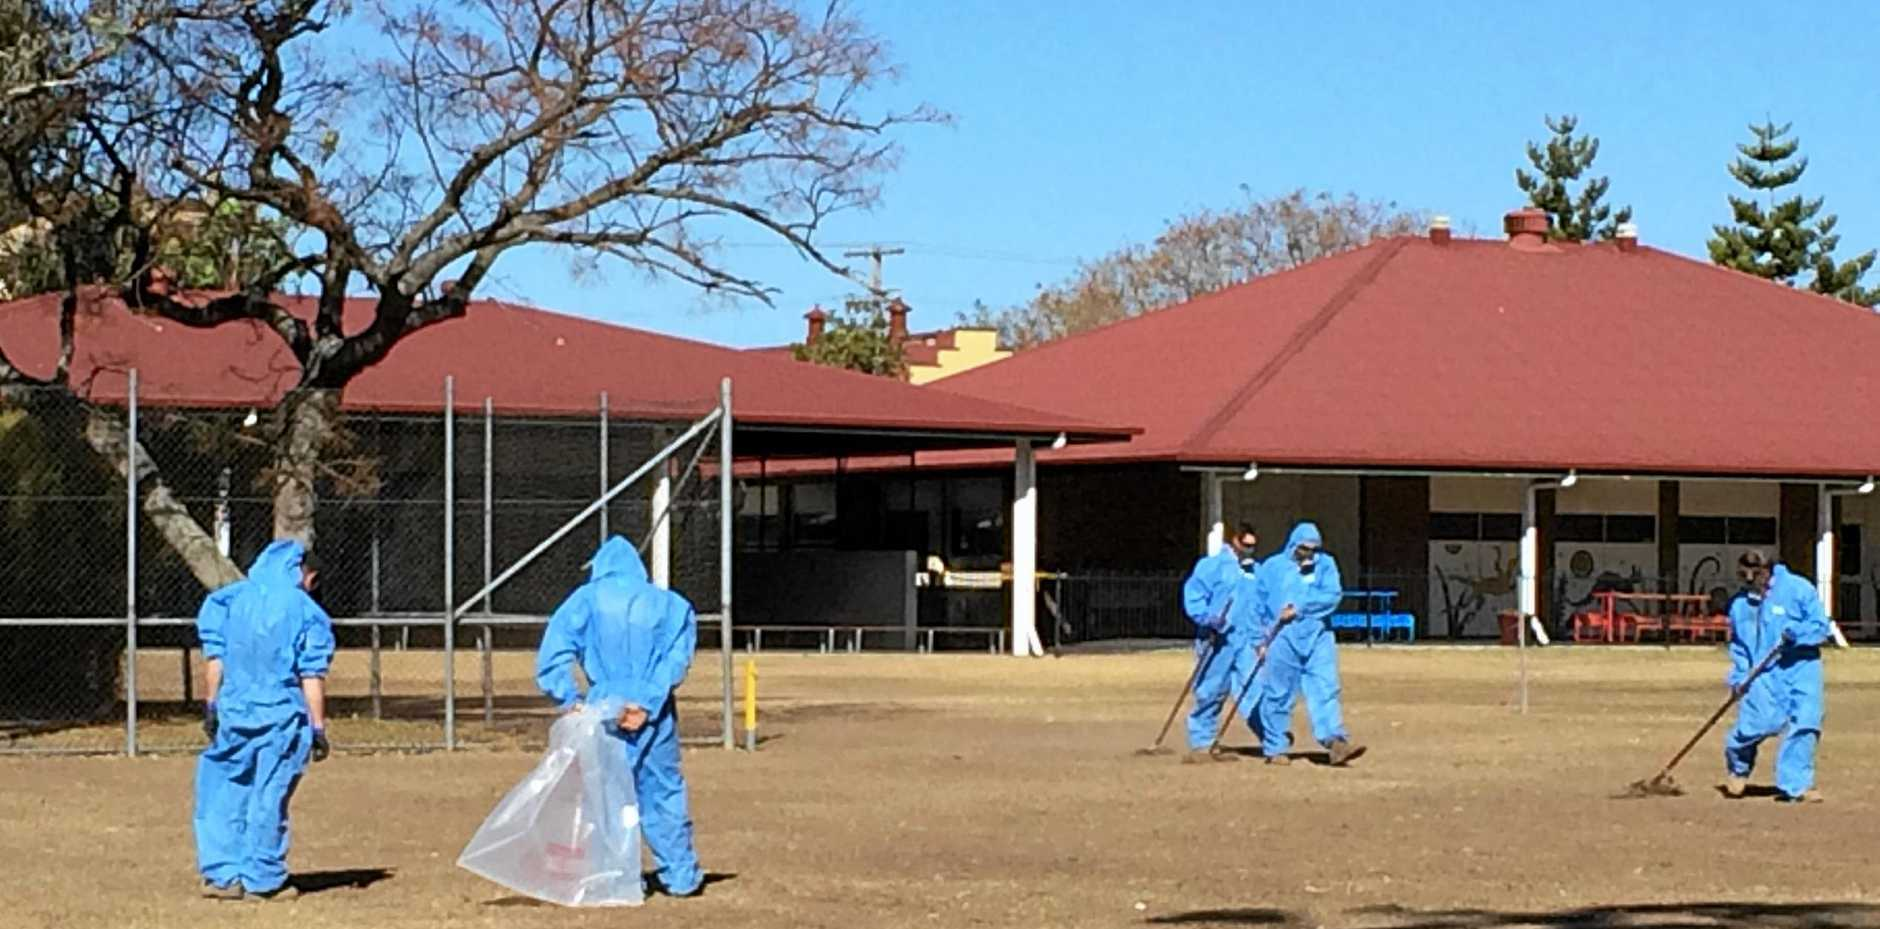 Asbestos consultants contracted by Workplace Health and Safety Queensland perform soil tests on the oval and playground area at Warwick Central State School on Saturday.